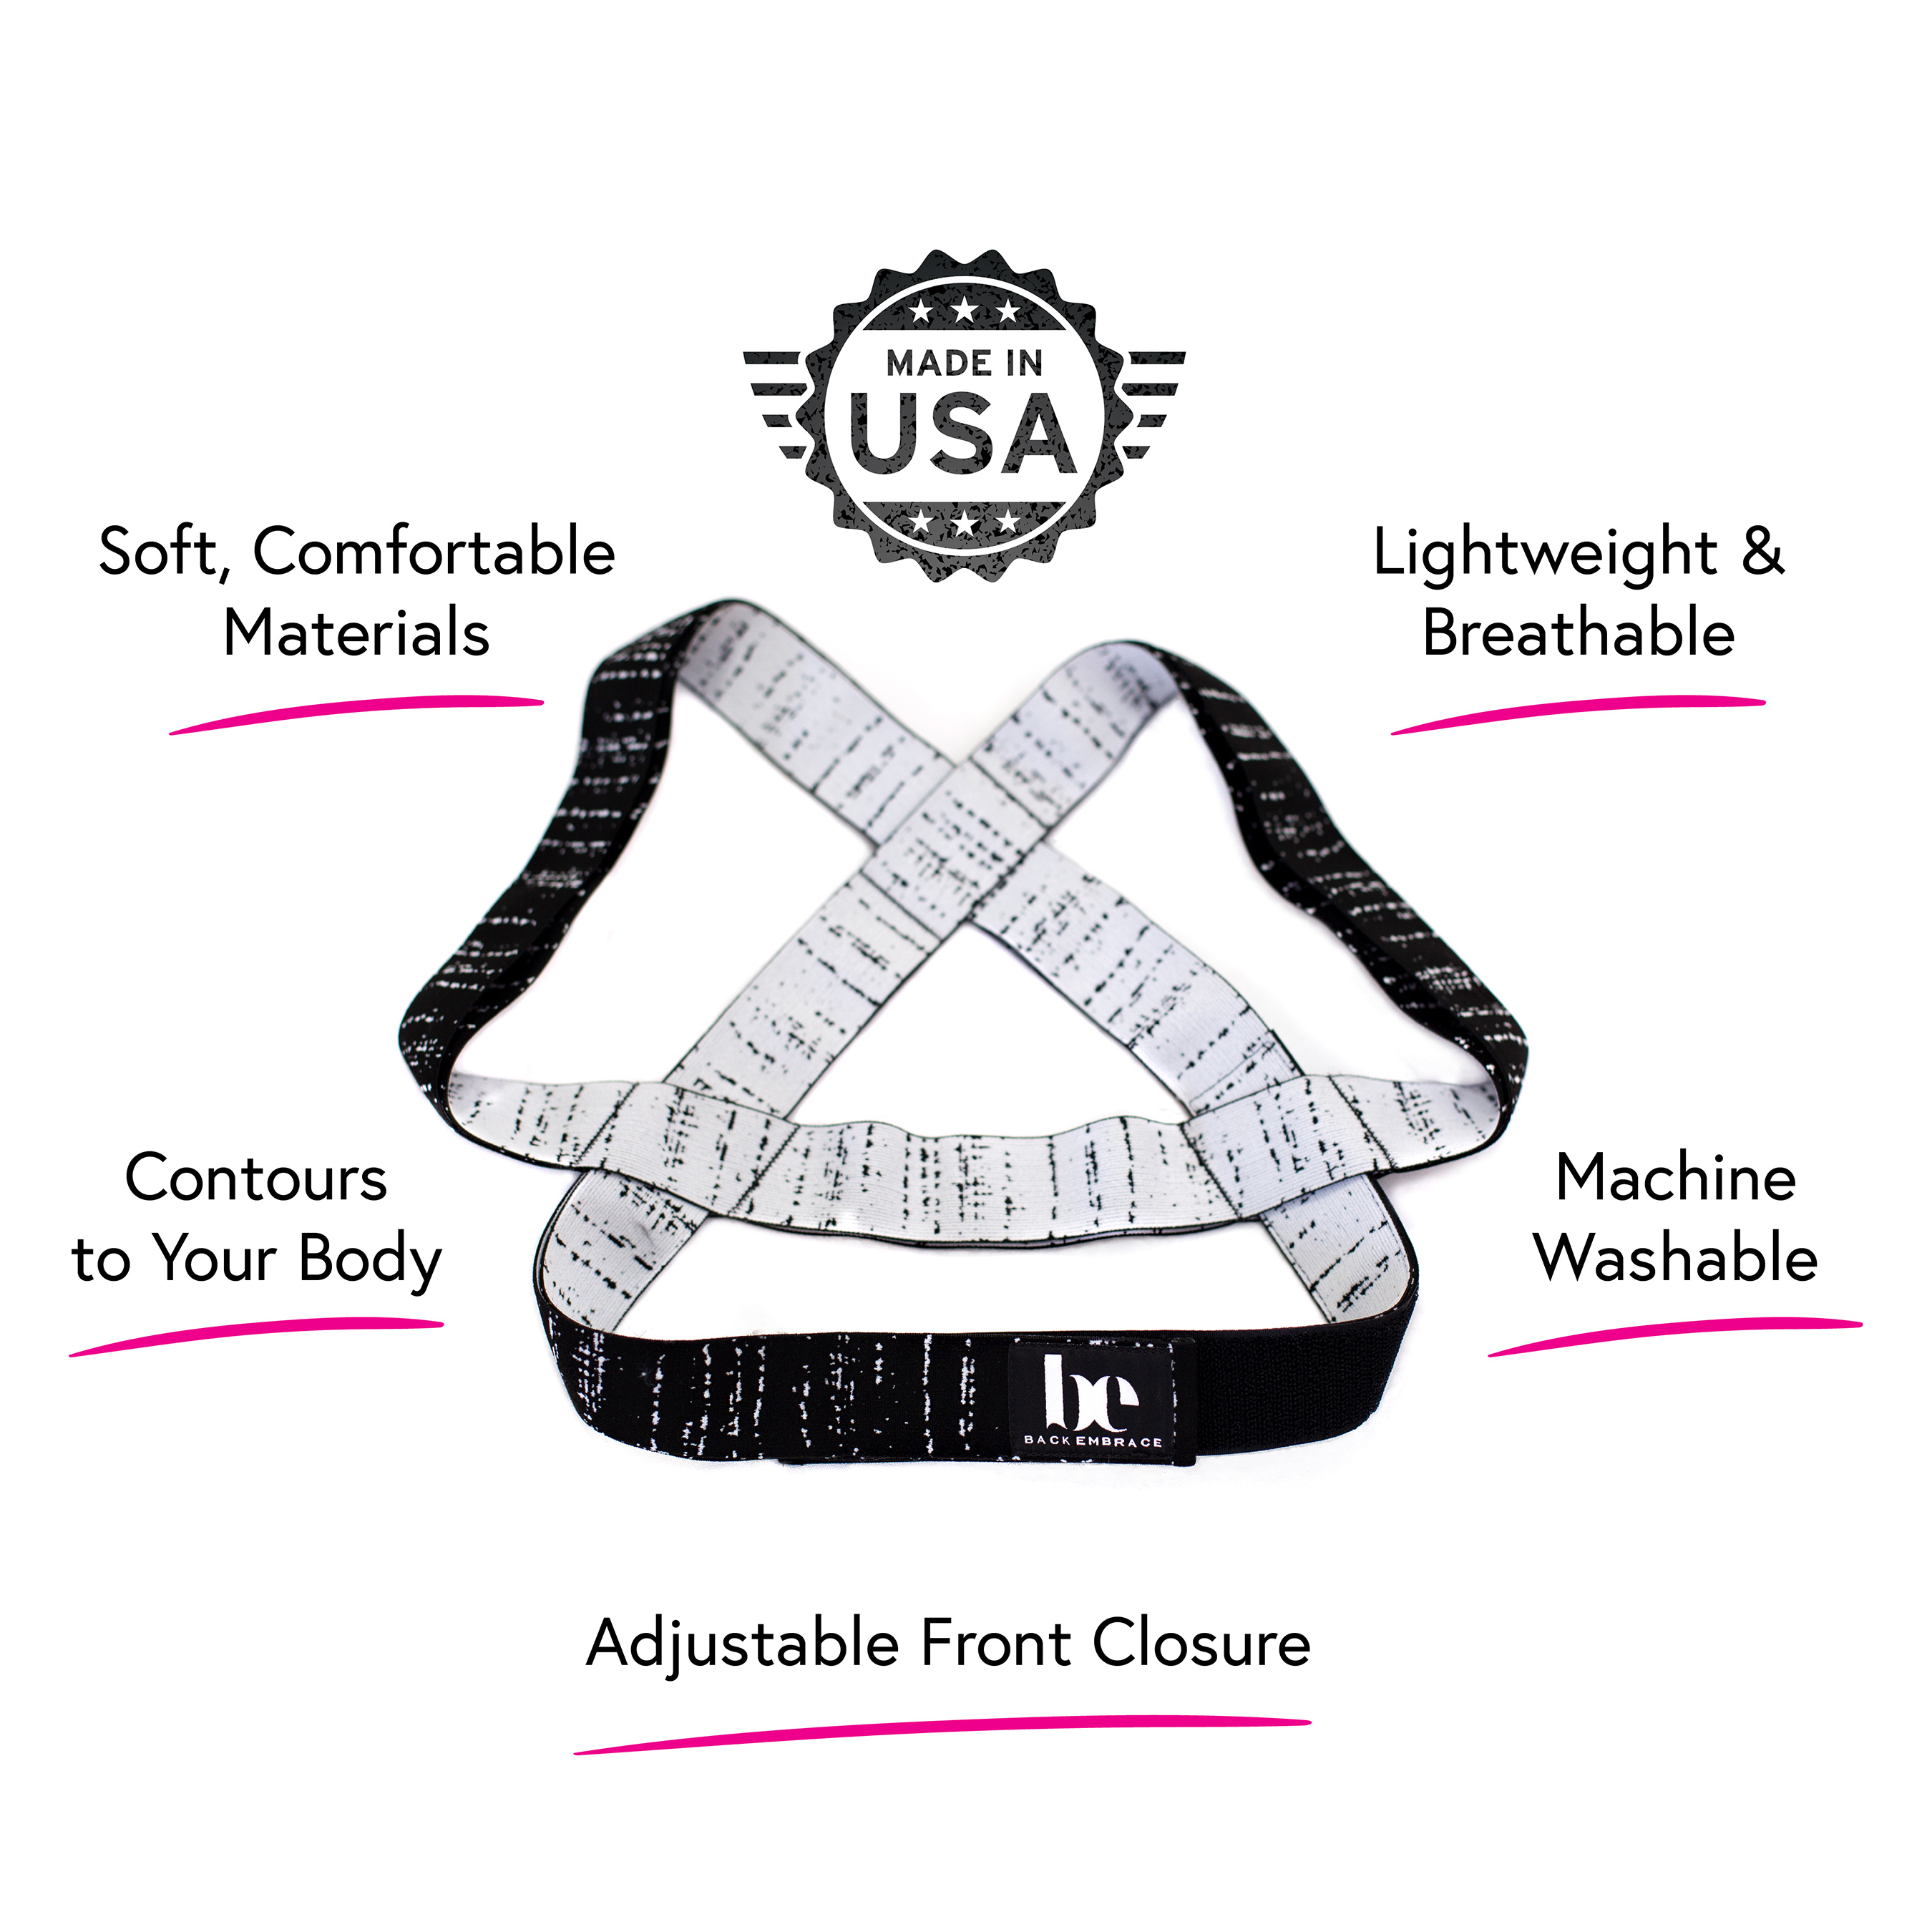 BackEmbrace is proudly made in the USA with a custom-woven blend of super soft, premium materials. There are no stiff, irritating or itchy straps and no uncomfortable metal pieces.